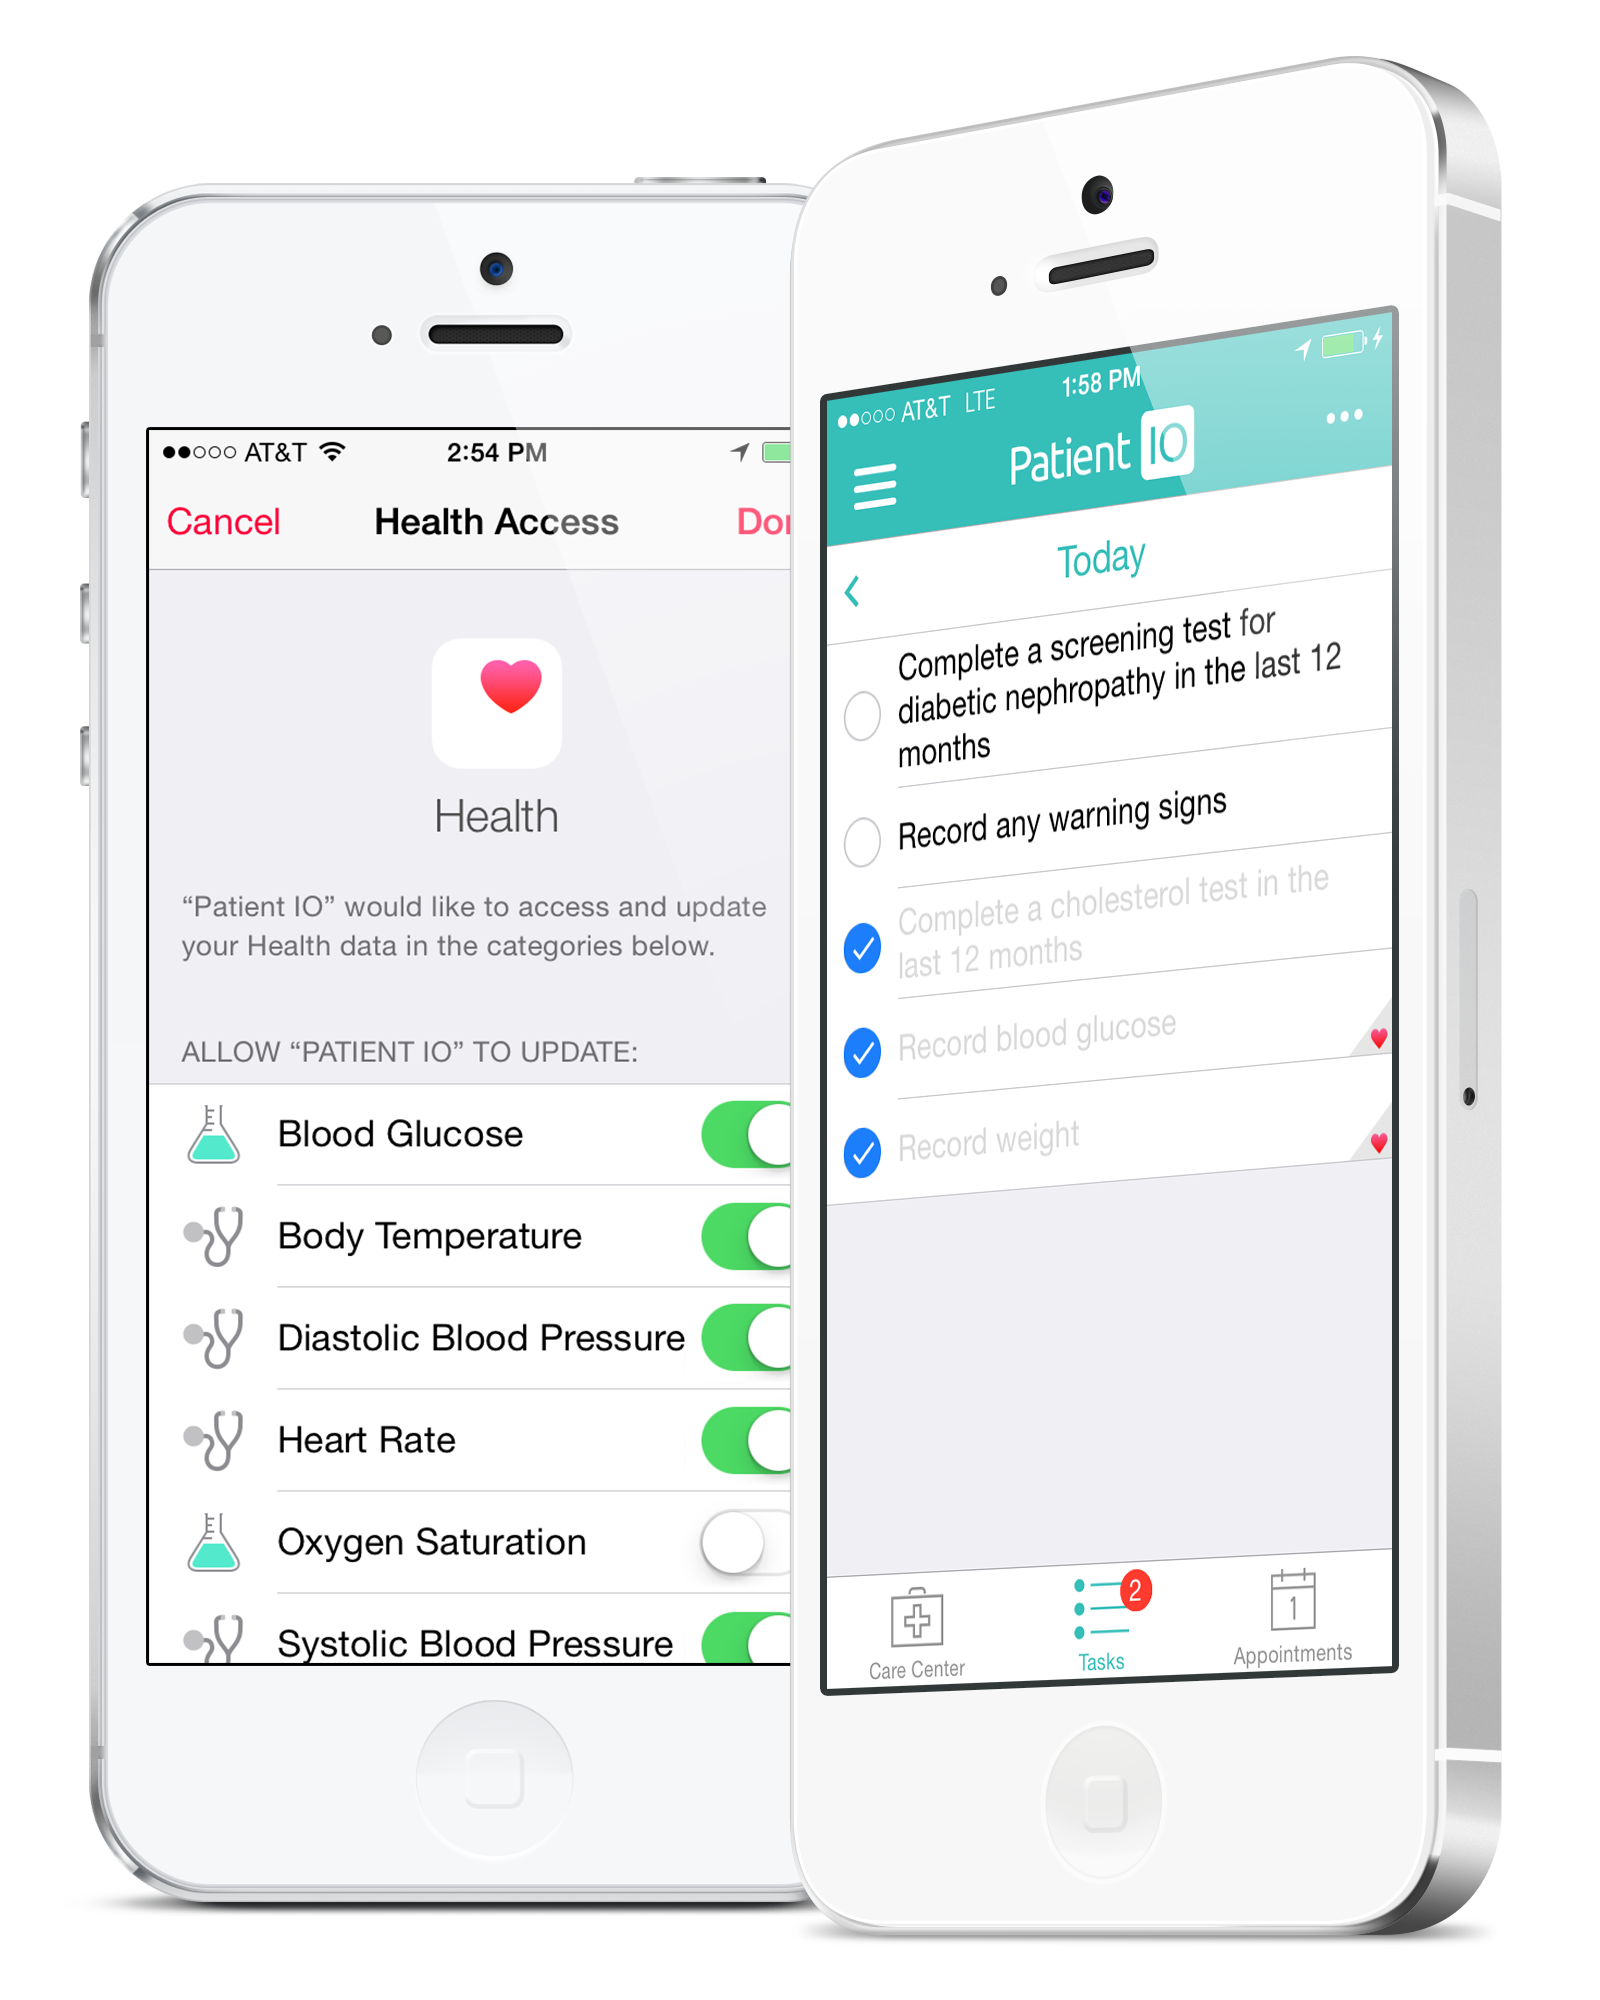 Mobile care plan platform Patient IO among apps to integrate with Apple's HealthKit